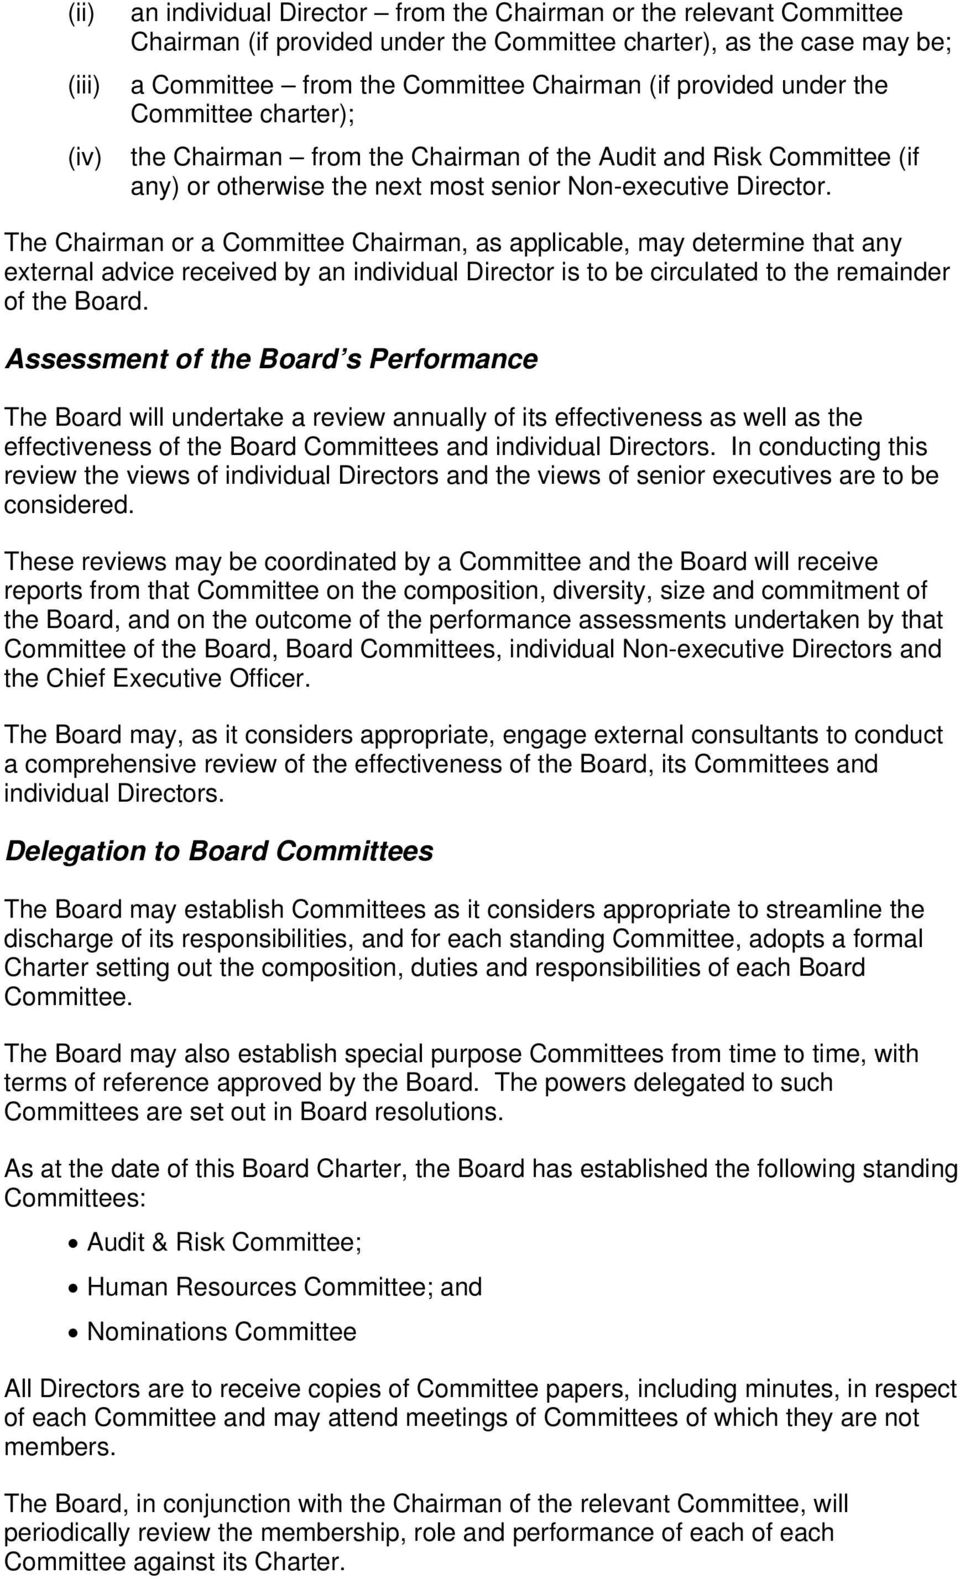 The Chairman or a Committee Chairman, as applicable, may determine that any external advice received by an individual Director is to be circulated to the remainder of the Board.